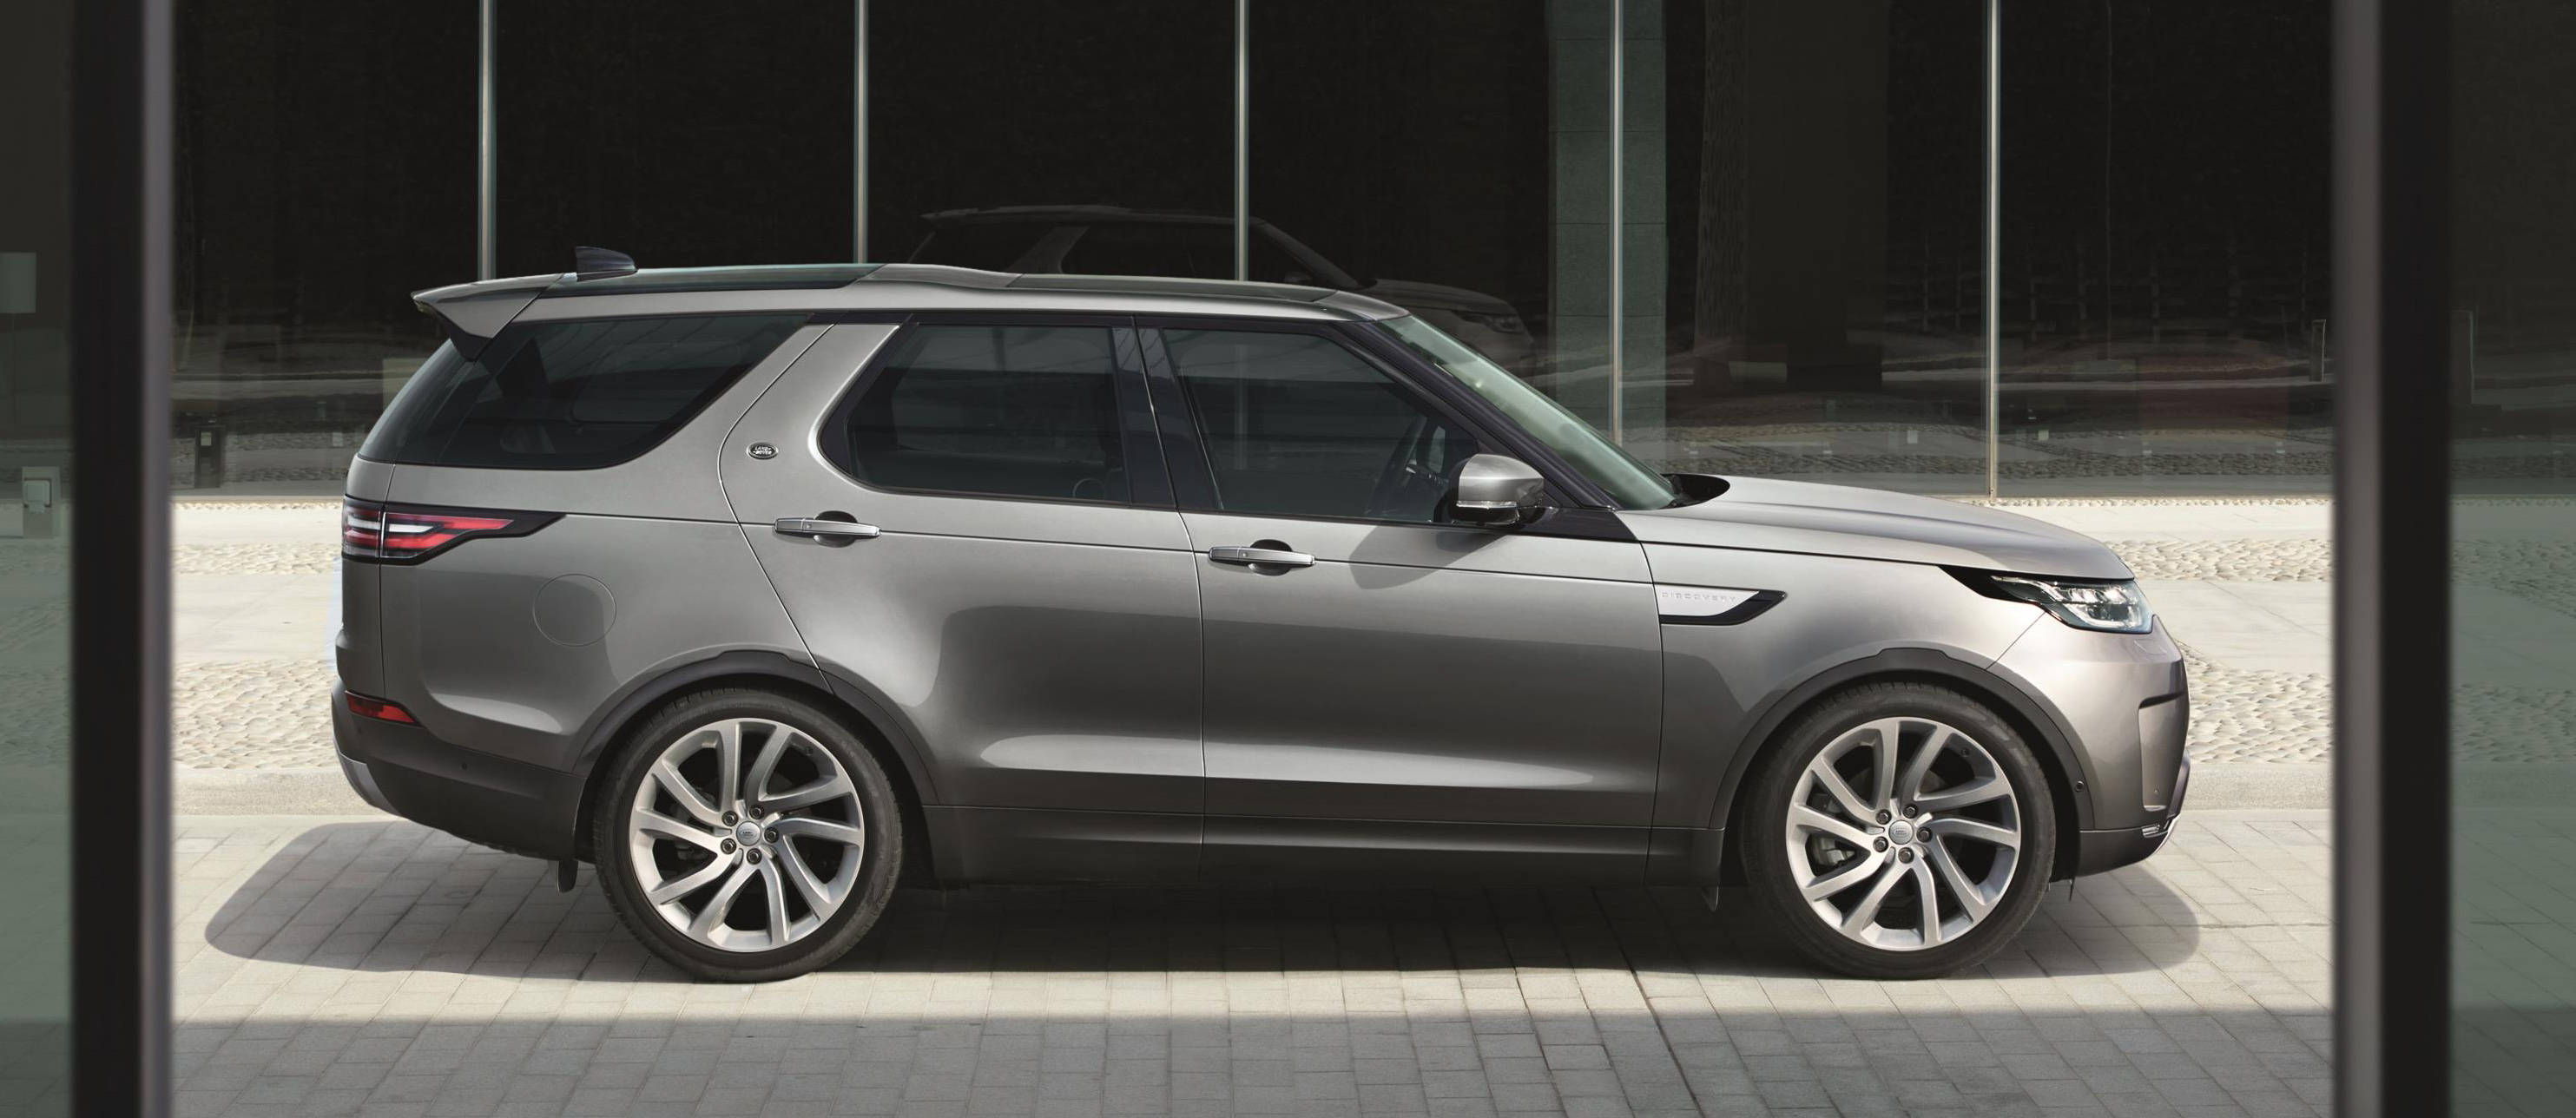 2016 Land Rover >> New Land Rover Discovery: full 7-seater, 480 kg lighter Paul Tan - Image 555583